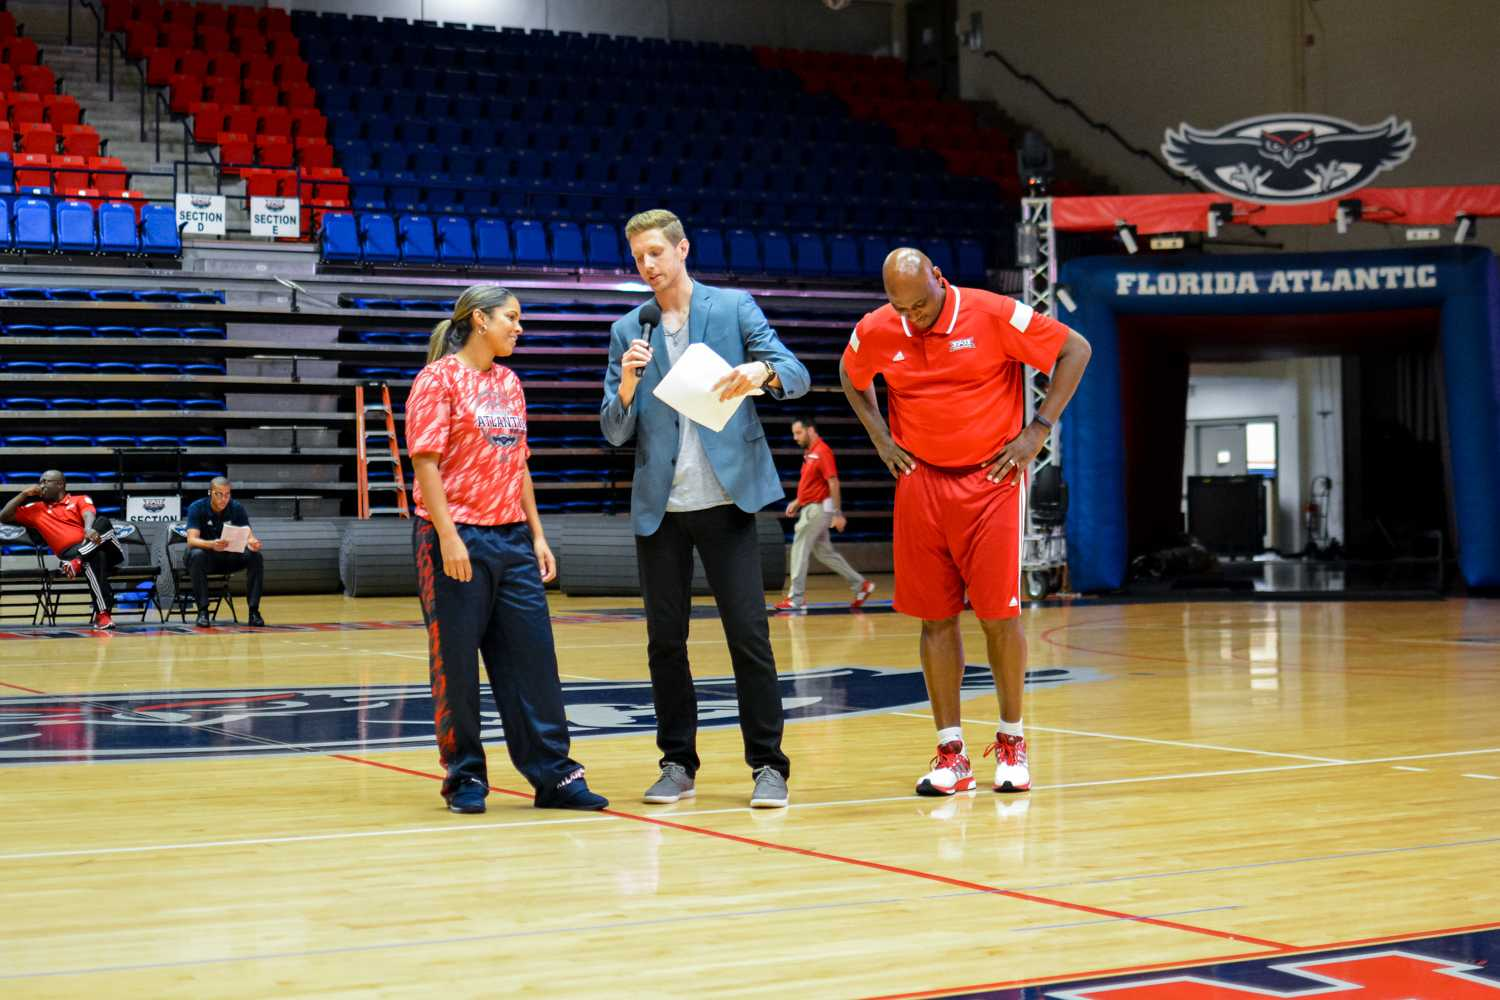 Aaron Shapiro asks Women's Basketball head coach Kellie Lewis Jay and Men's Basketball head coach Michael Curry questions about the upcoming season. Emily Creighton | Features Editor